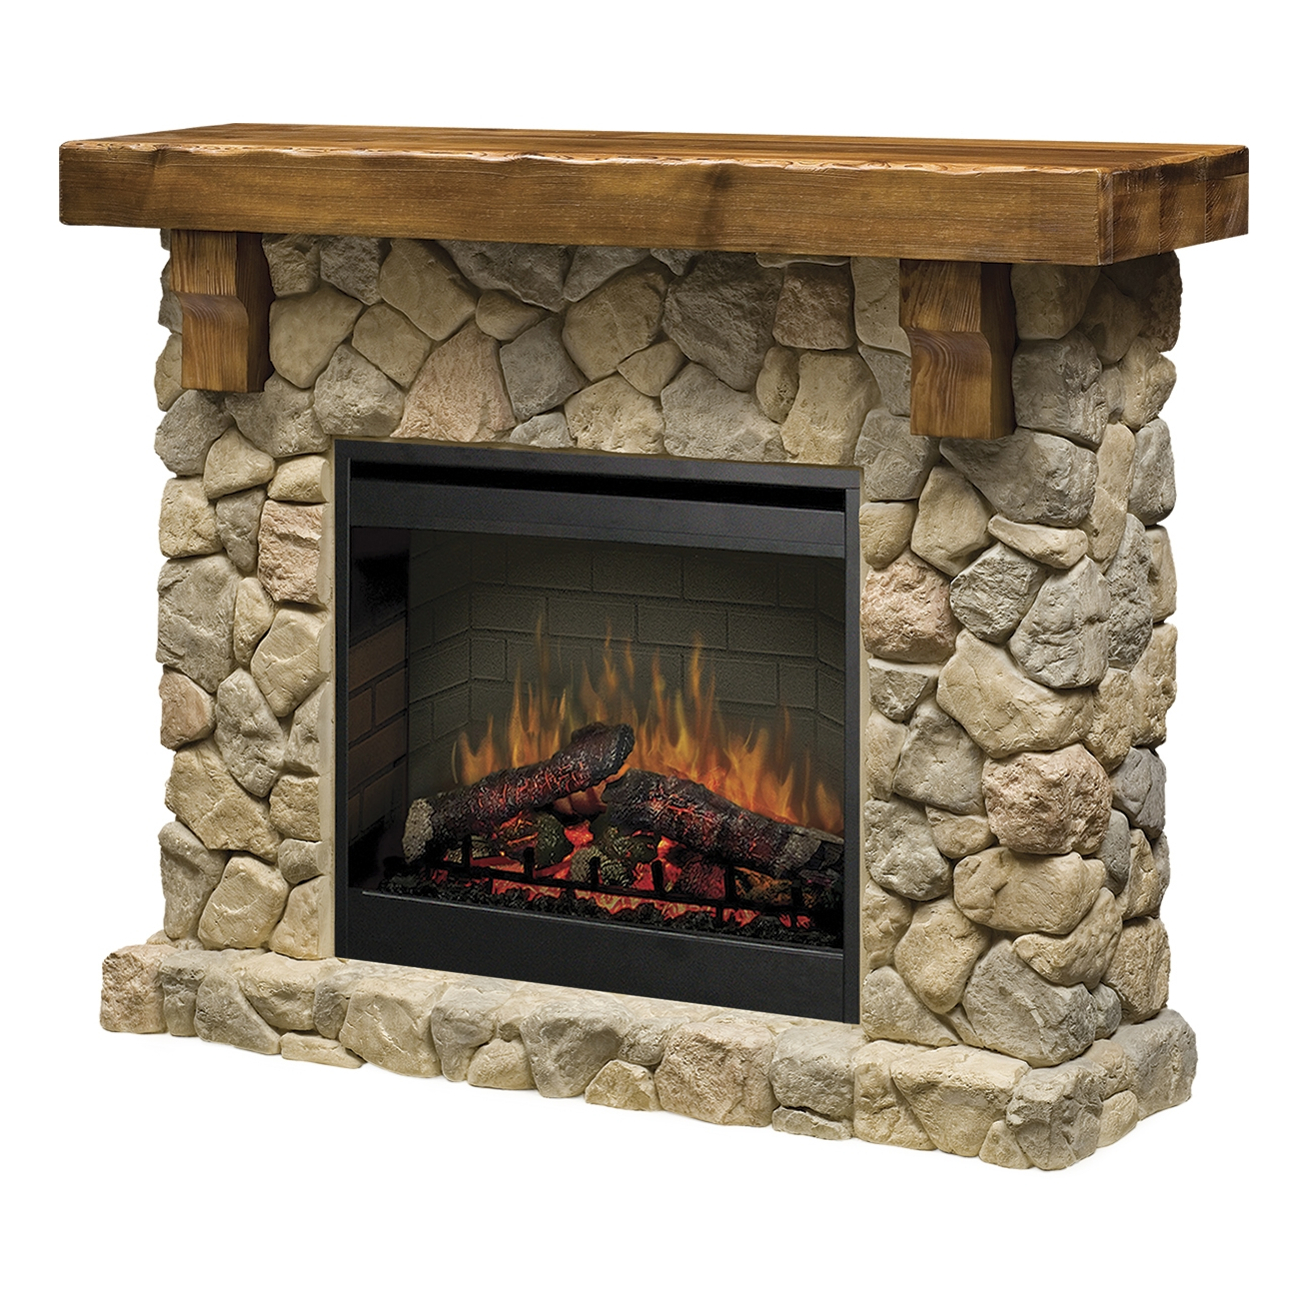 Dimplex Fieldstone Smp 904 St Electric Fireplace Wall Mantel Addco Electric Fireplaces